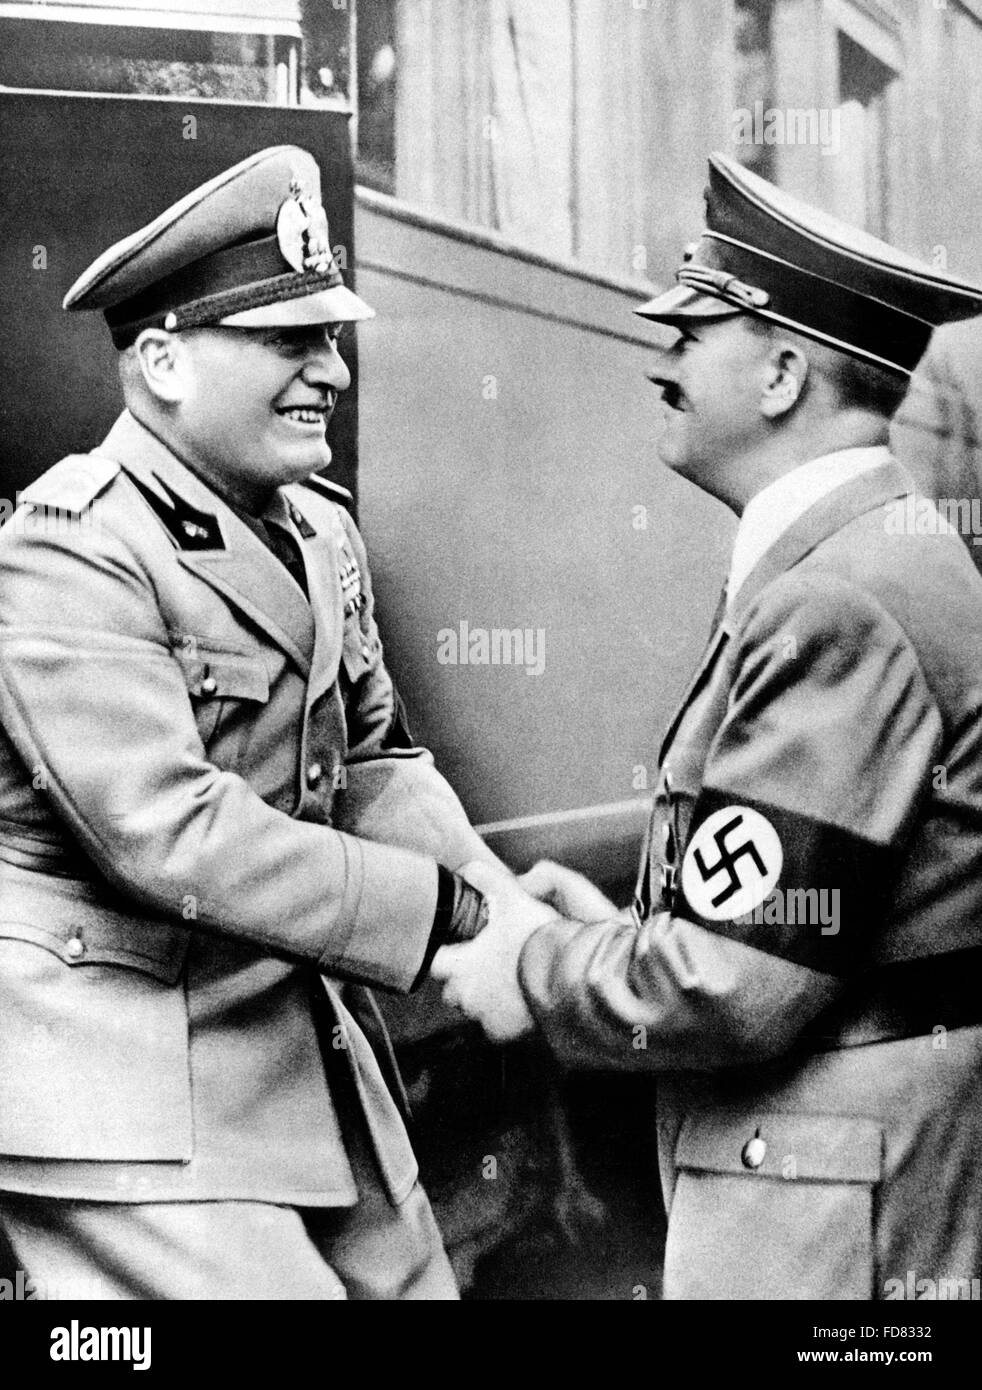 Image result for hitler mussolini